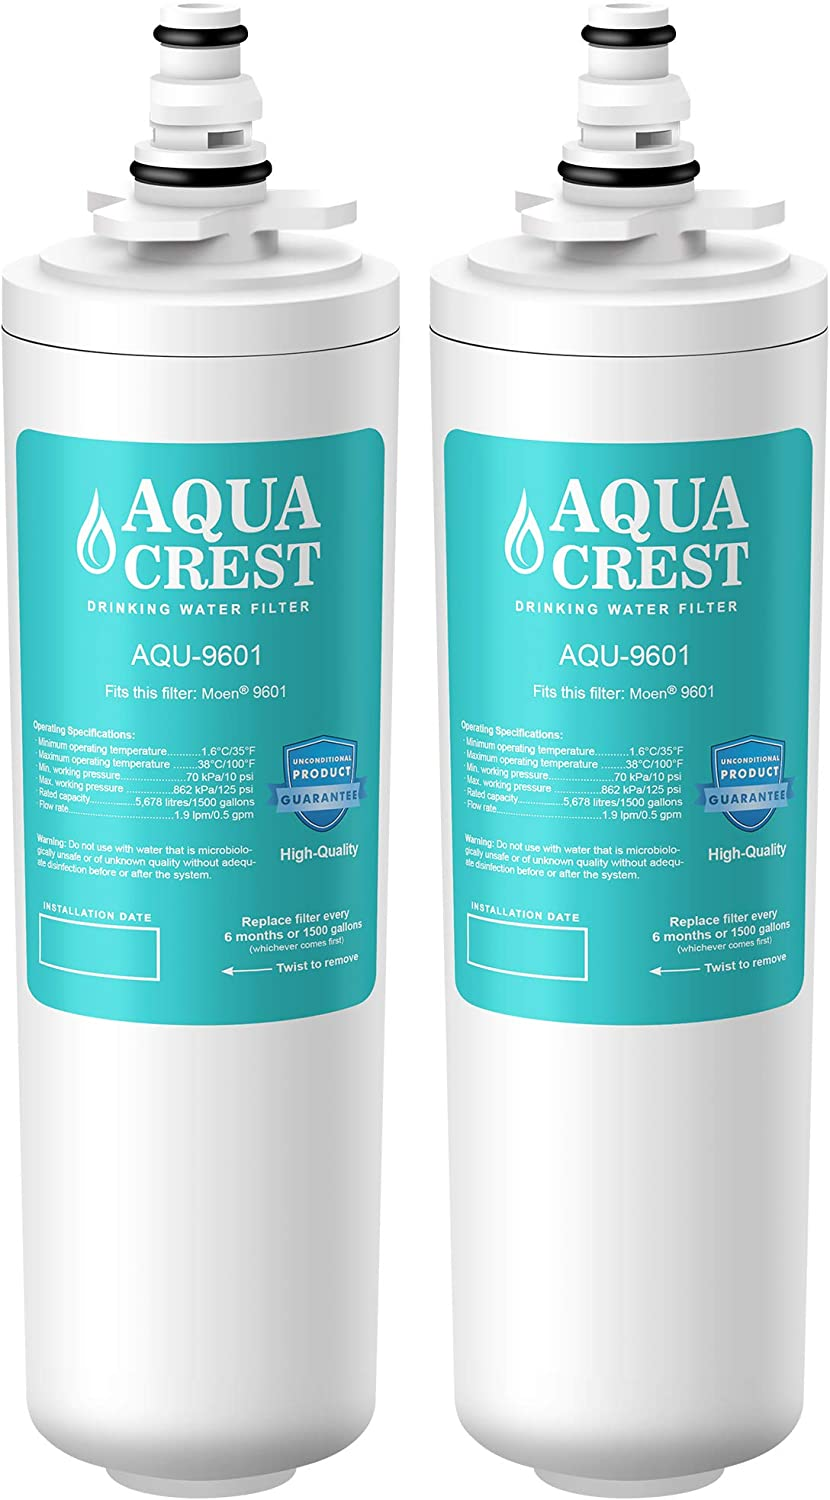 AQUA CREST 9601 Water Filter, Compatible with Moen 9601 ChoiceFlo, 9600, Fits F87400, F7400, F87200, 77200, CAF87254, S5500 Series of Moen Faucets (Pack of 2)